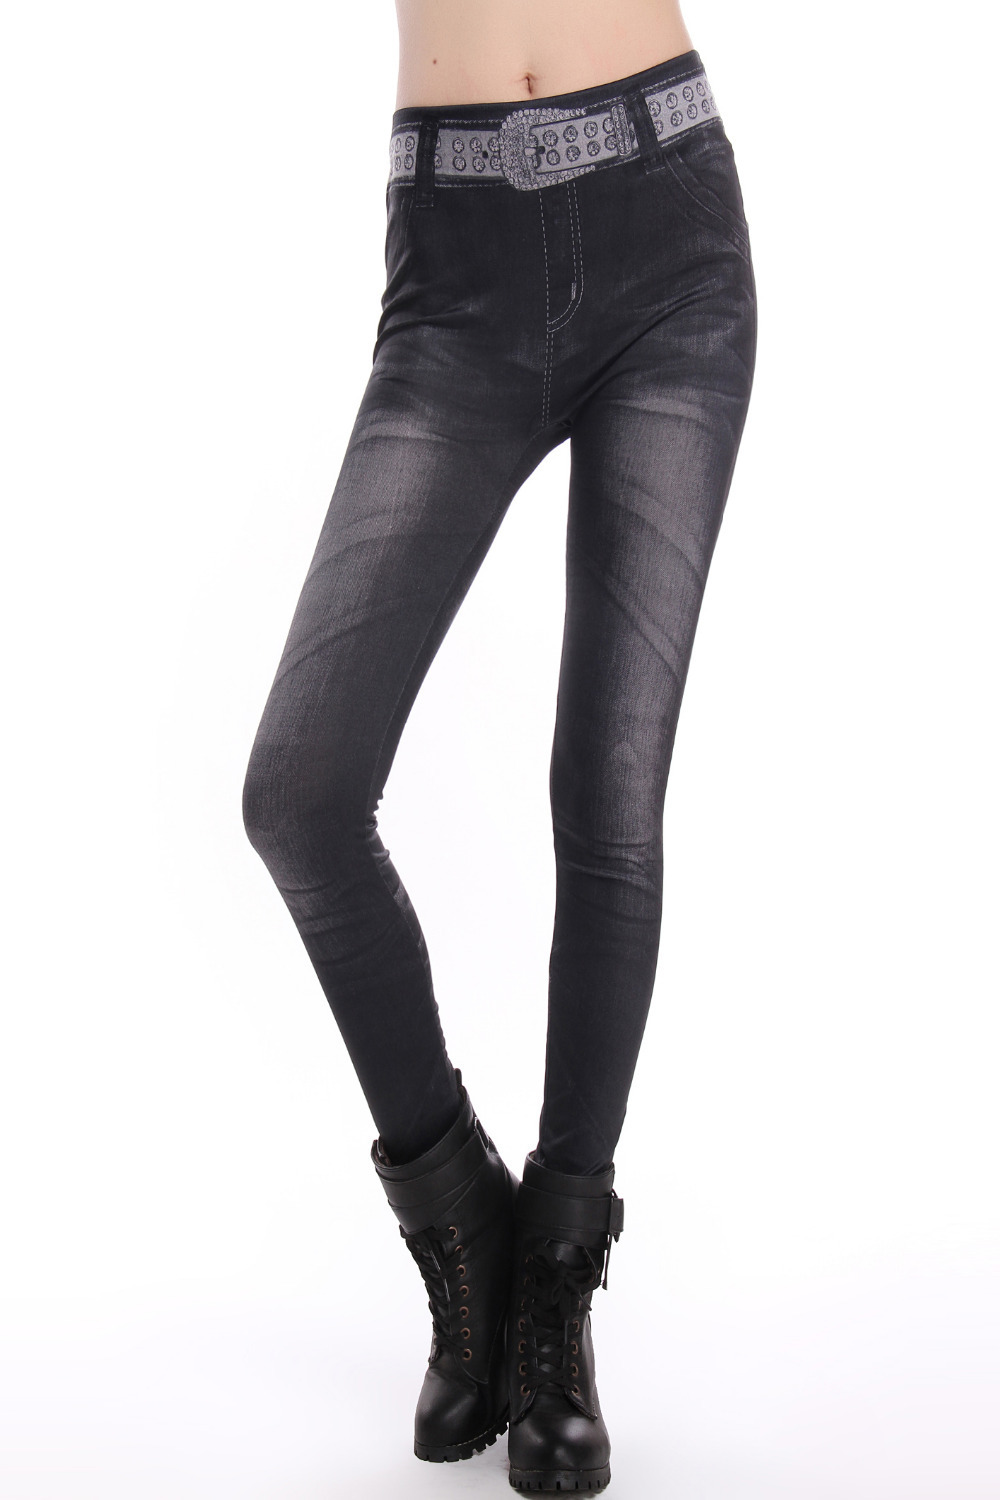 Cool How To Wear WideLeg Pants For Women 2017